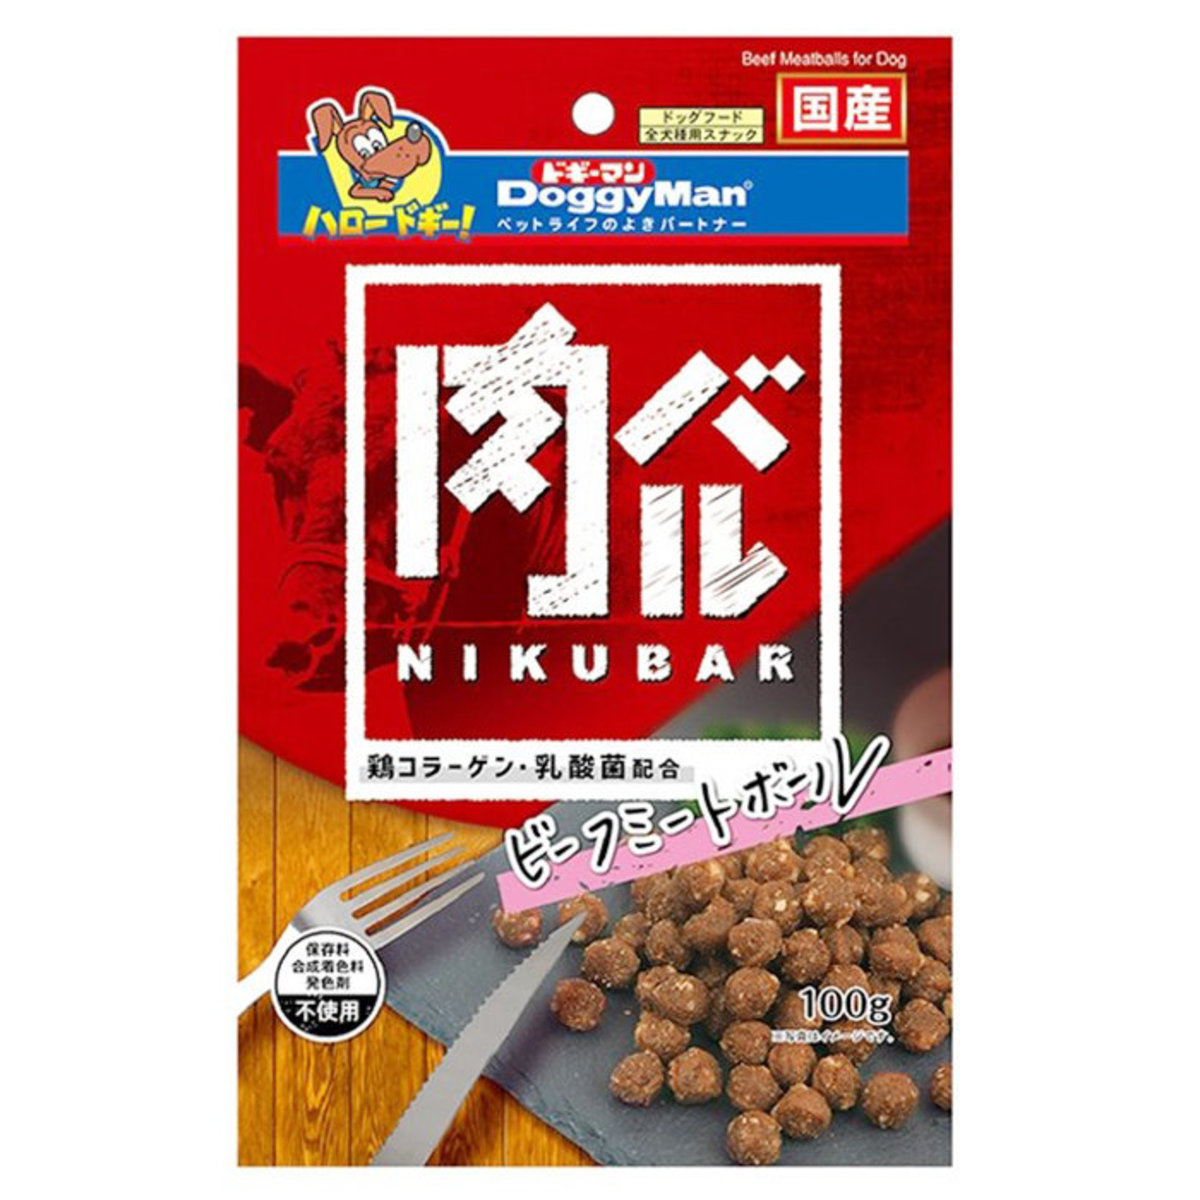 Beef Meatballs for Dog 100g